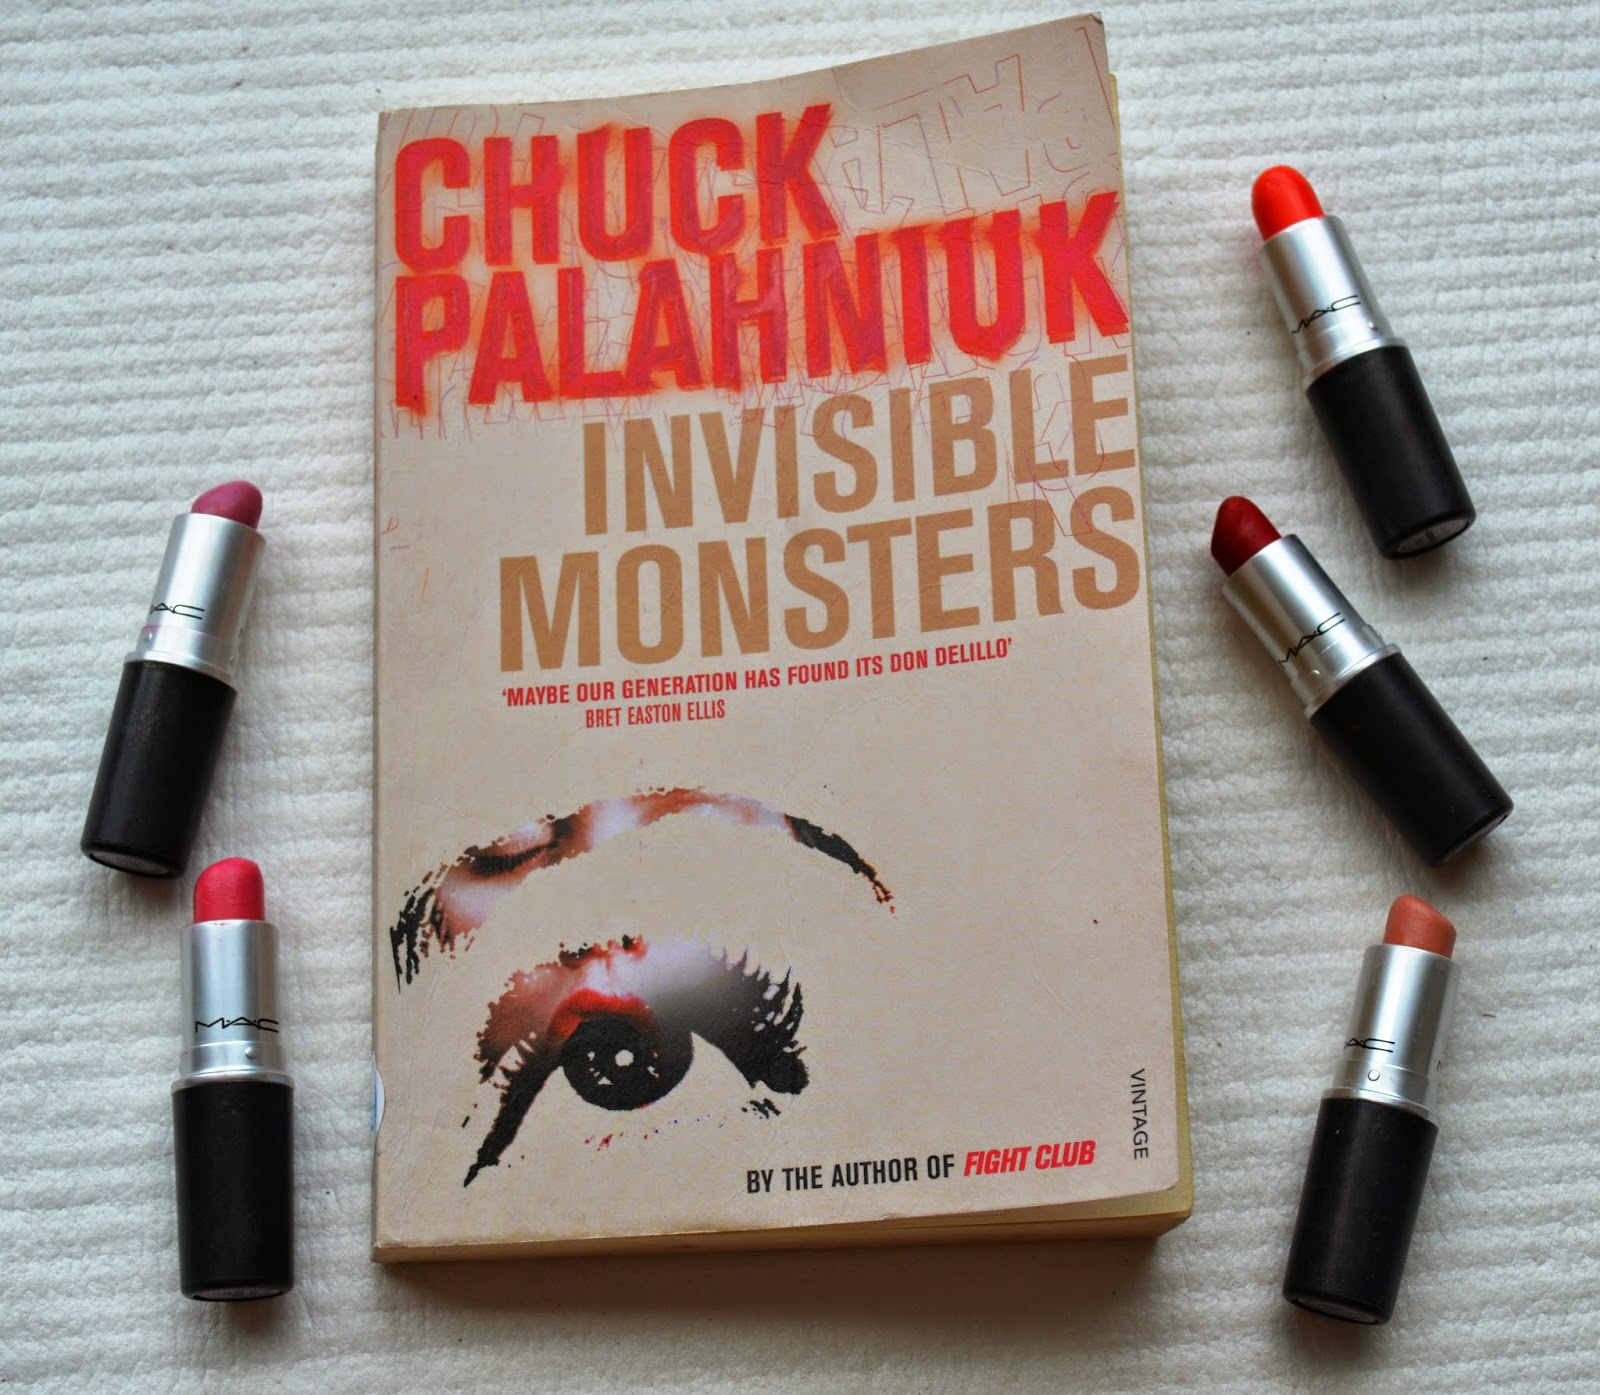 Chuck Palahniuk, Invisible Monsters, review, plot summary, transgender, model, literature, American, book, paperback, photograph,